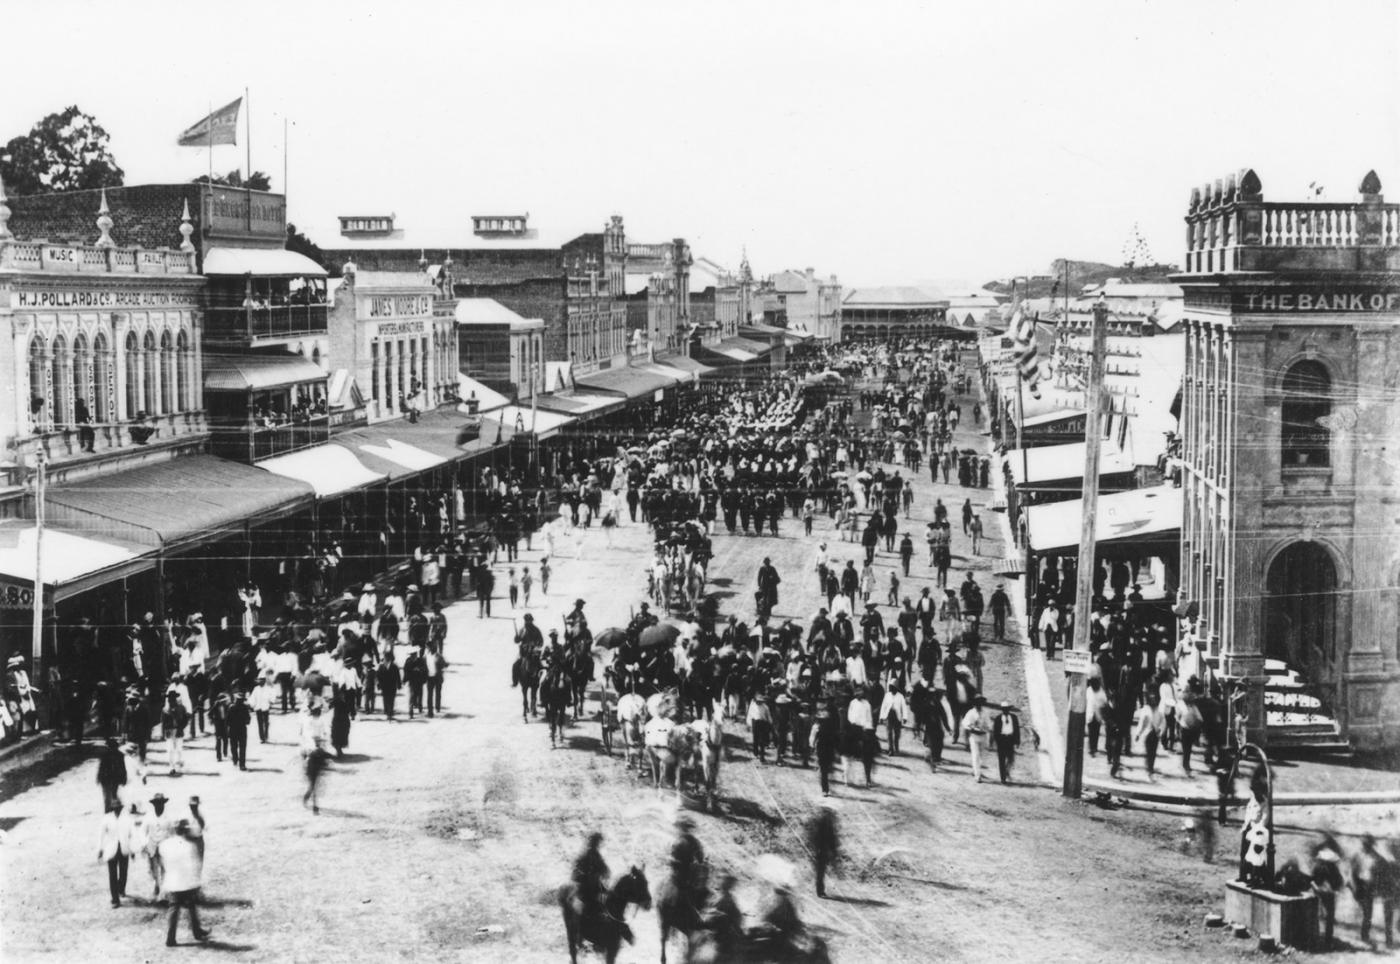 Crowded street scene showing hundreds of people gathered in the streets of Townsville for a procession